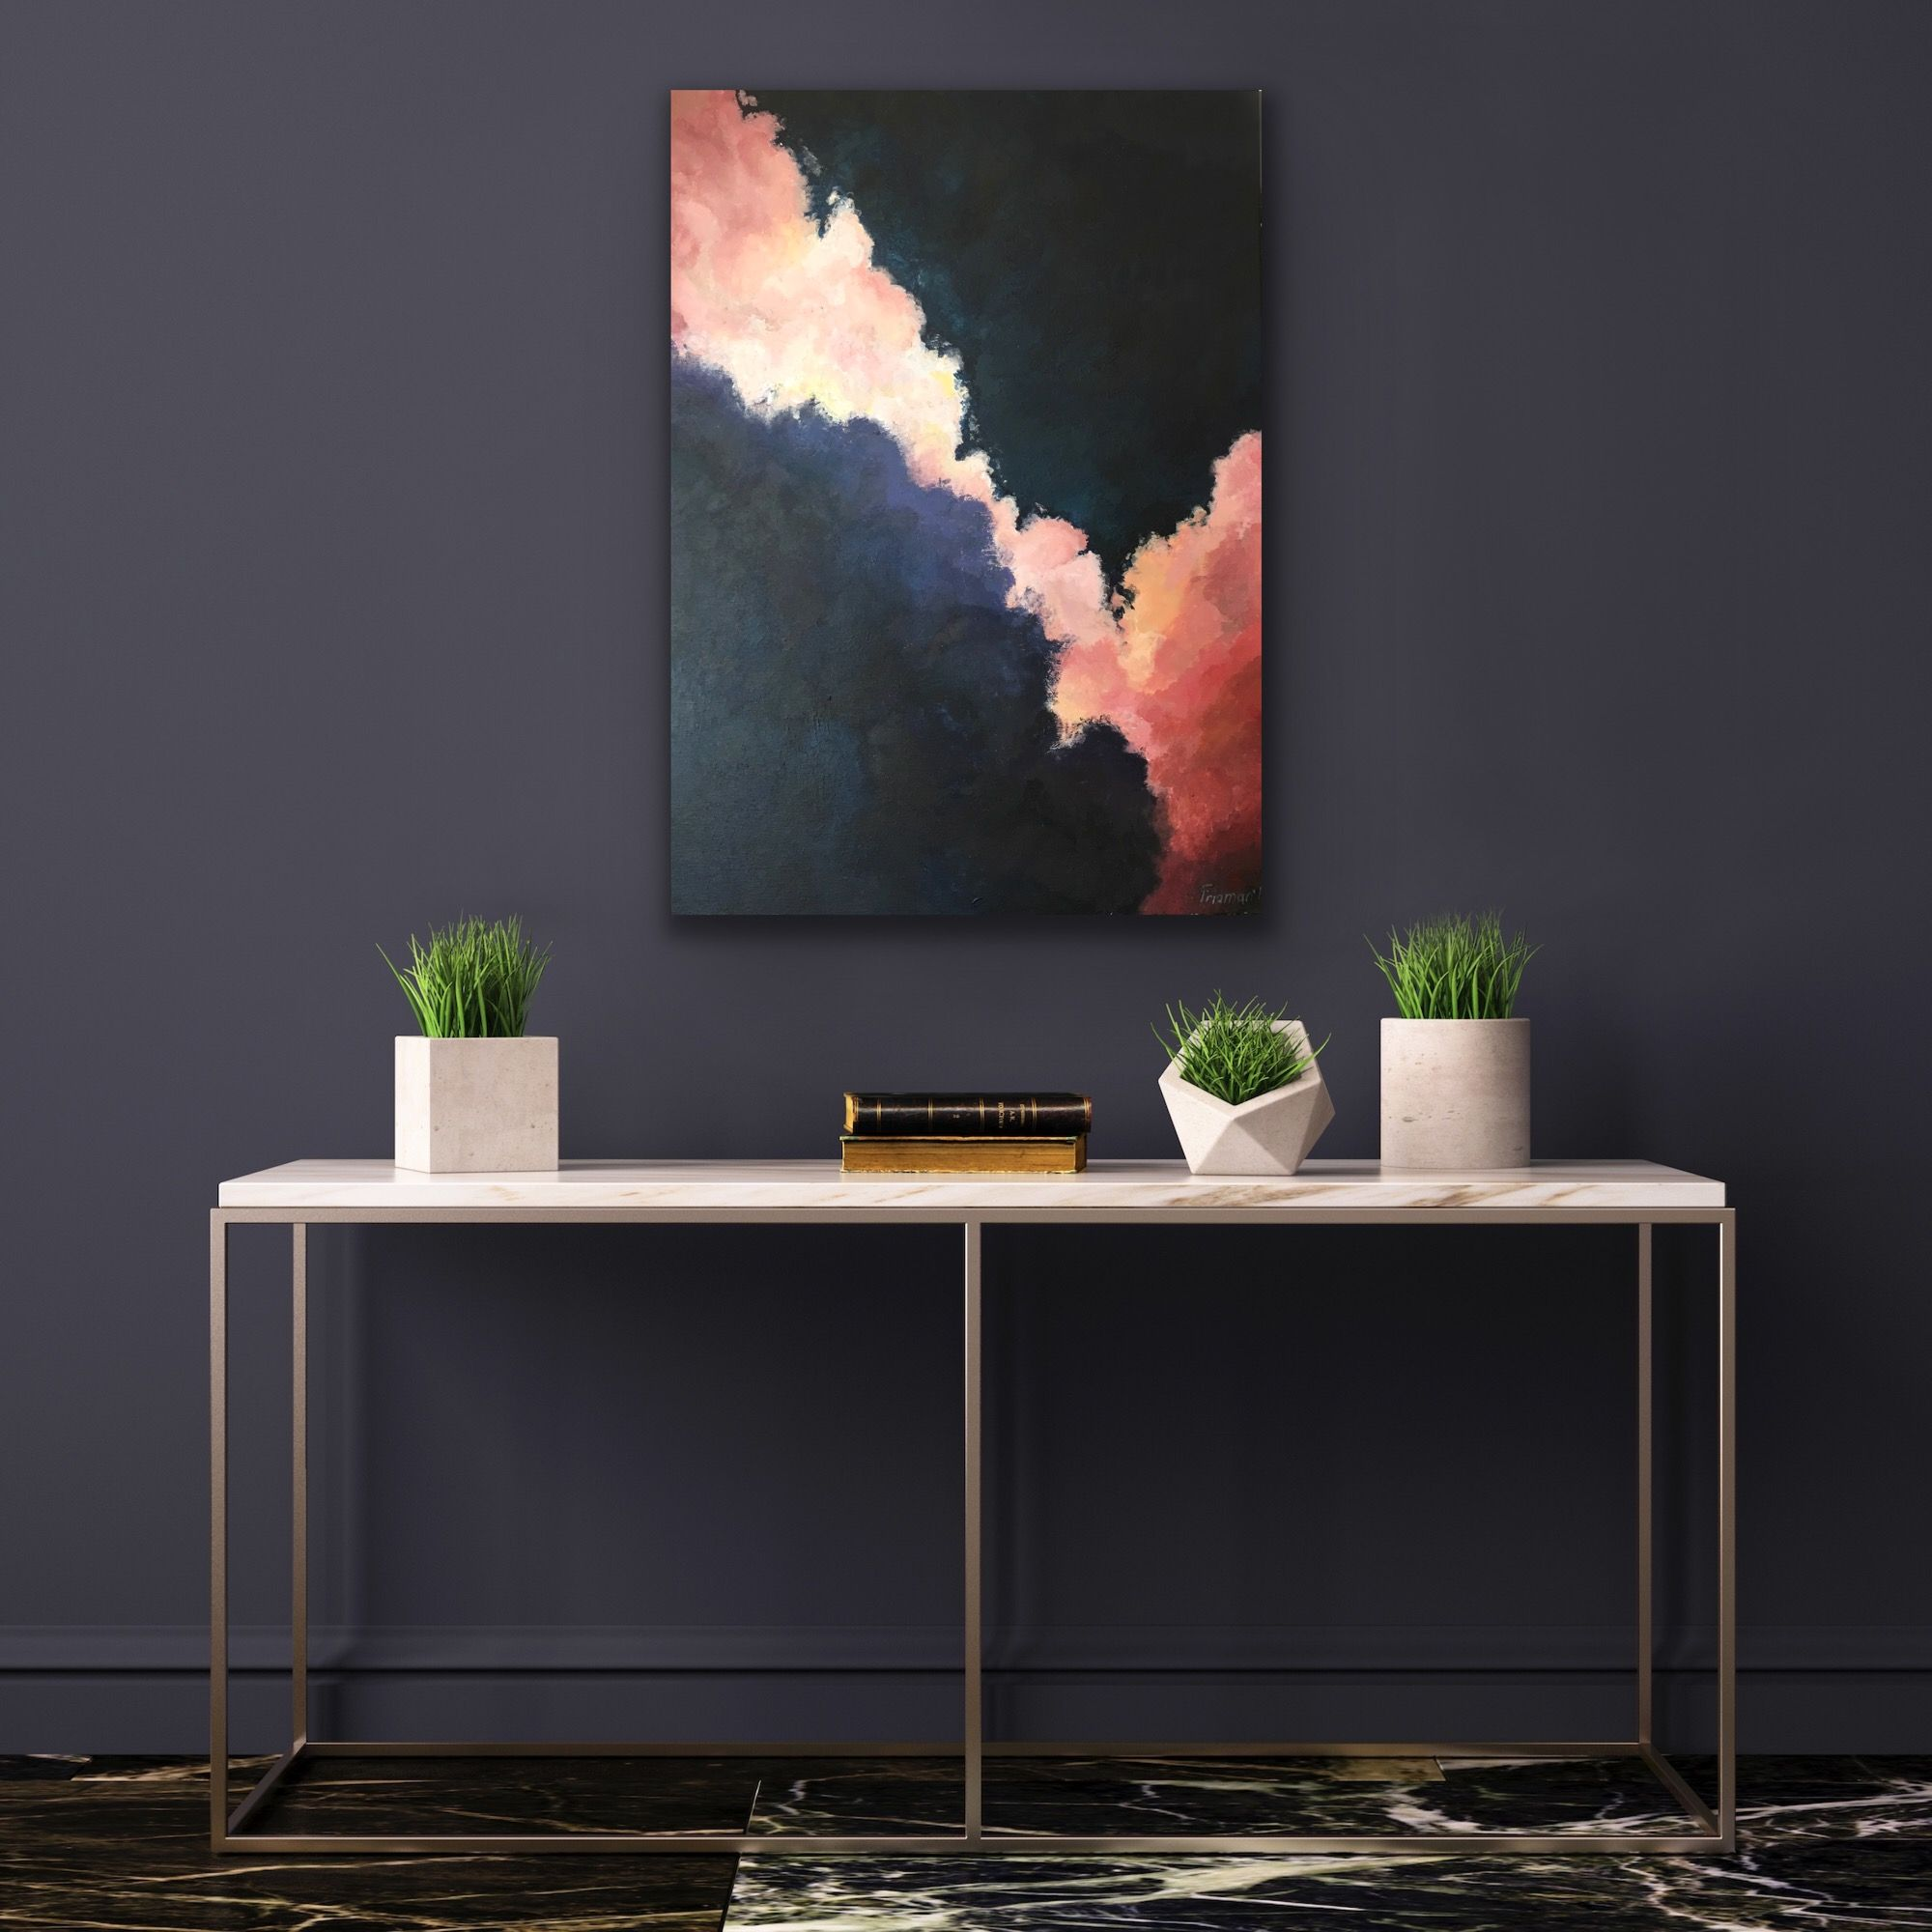 Great Interior Painting Ready To Be Hanged On The Wall 100 Hand Made With High Quality Acrylics On Canvas Abstract Pink And Dark Grey Thundering Sky A Stena